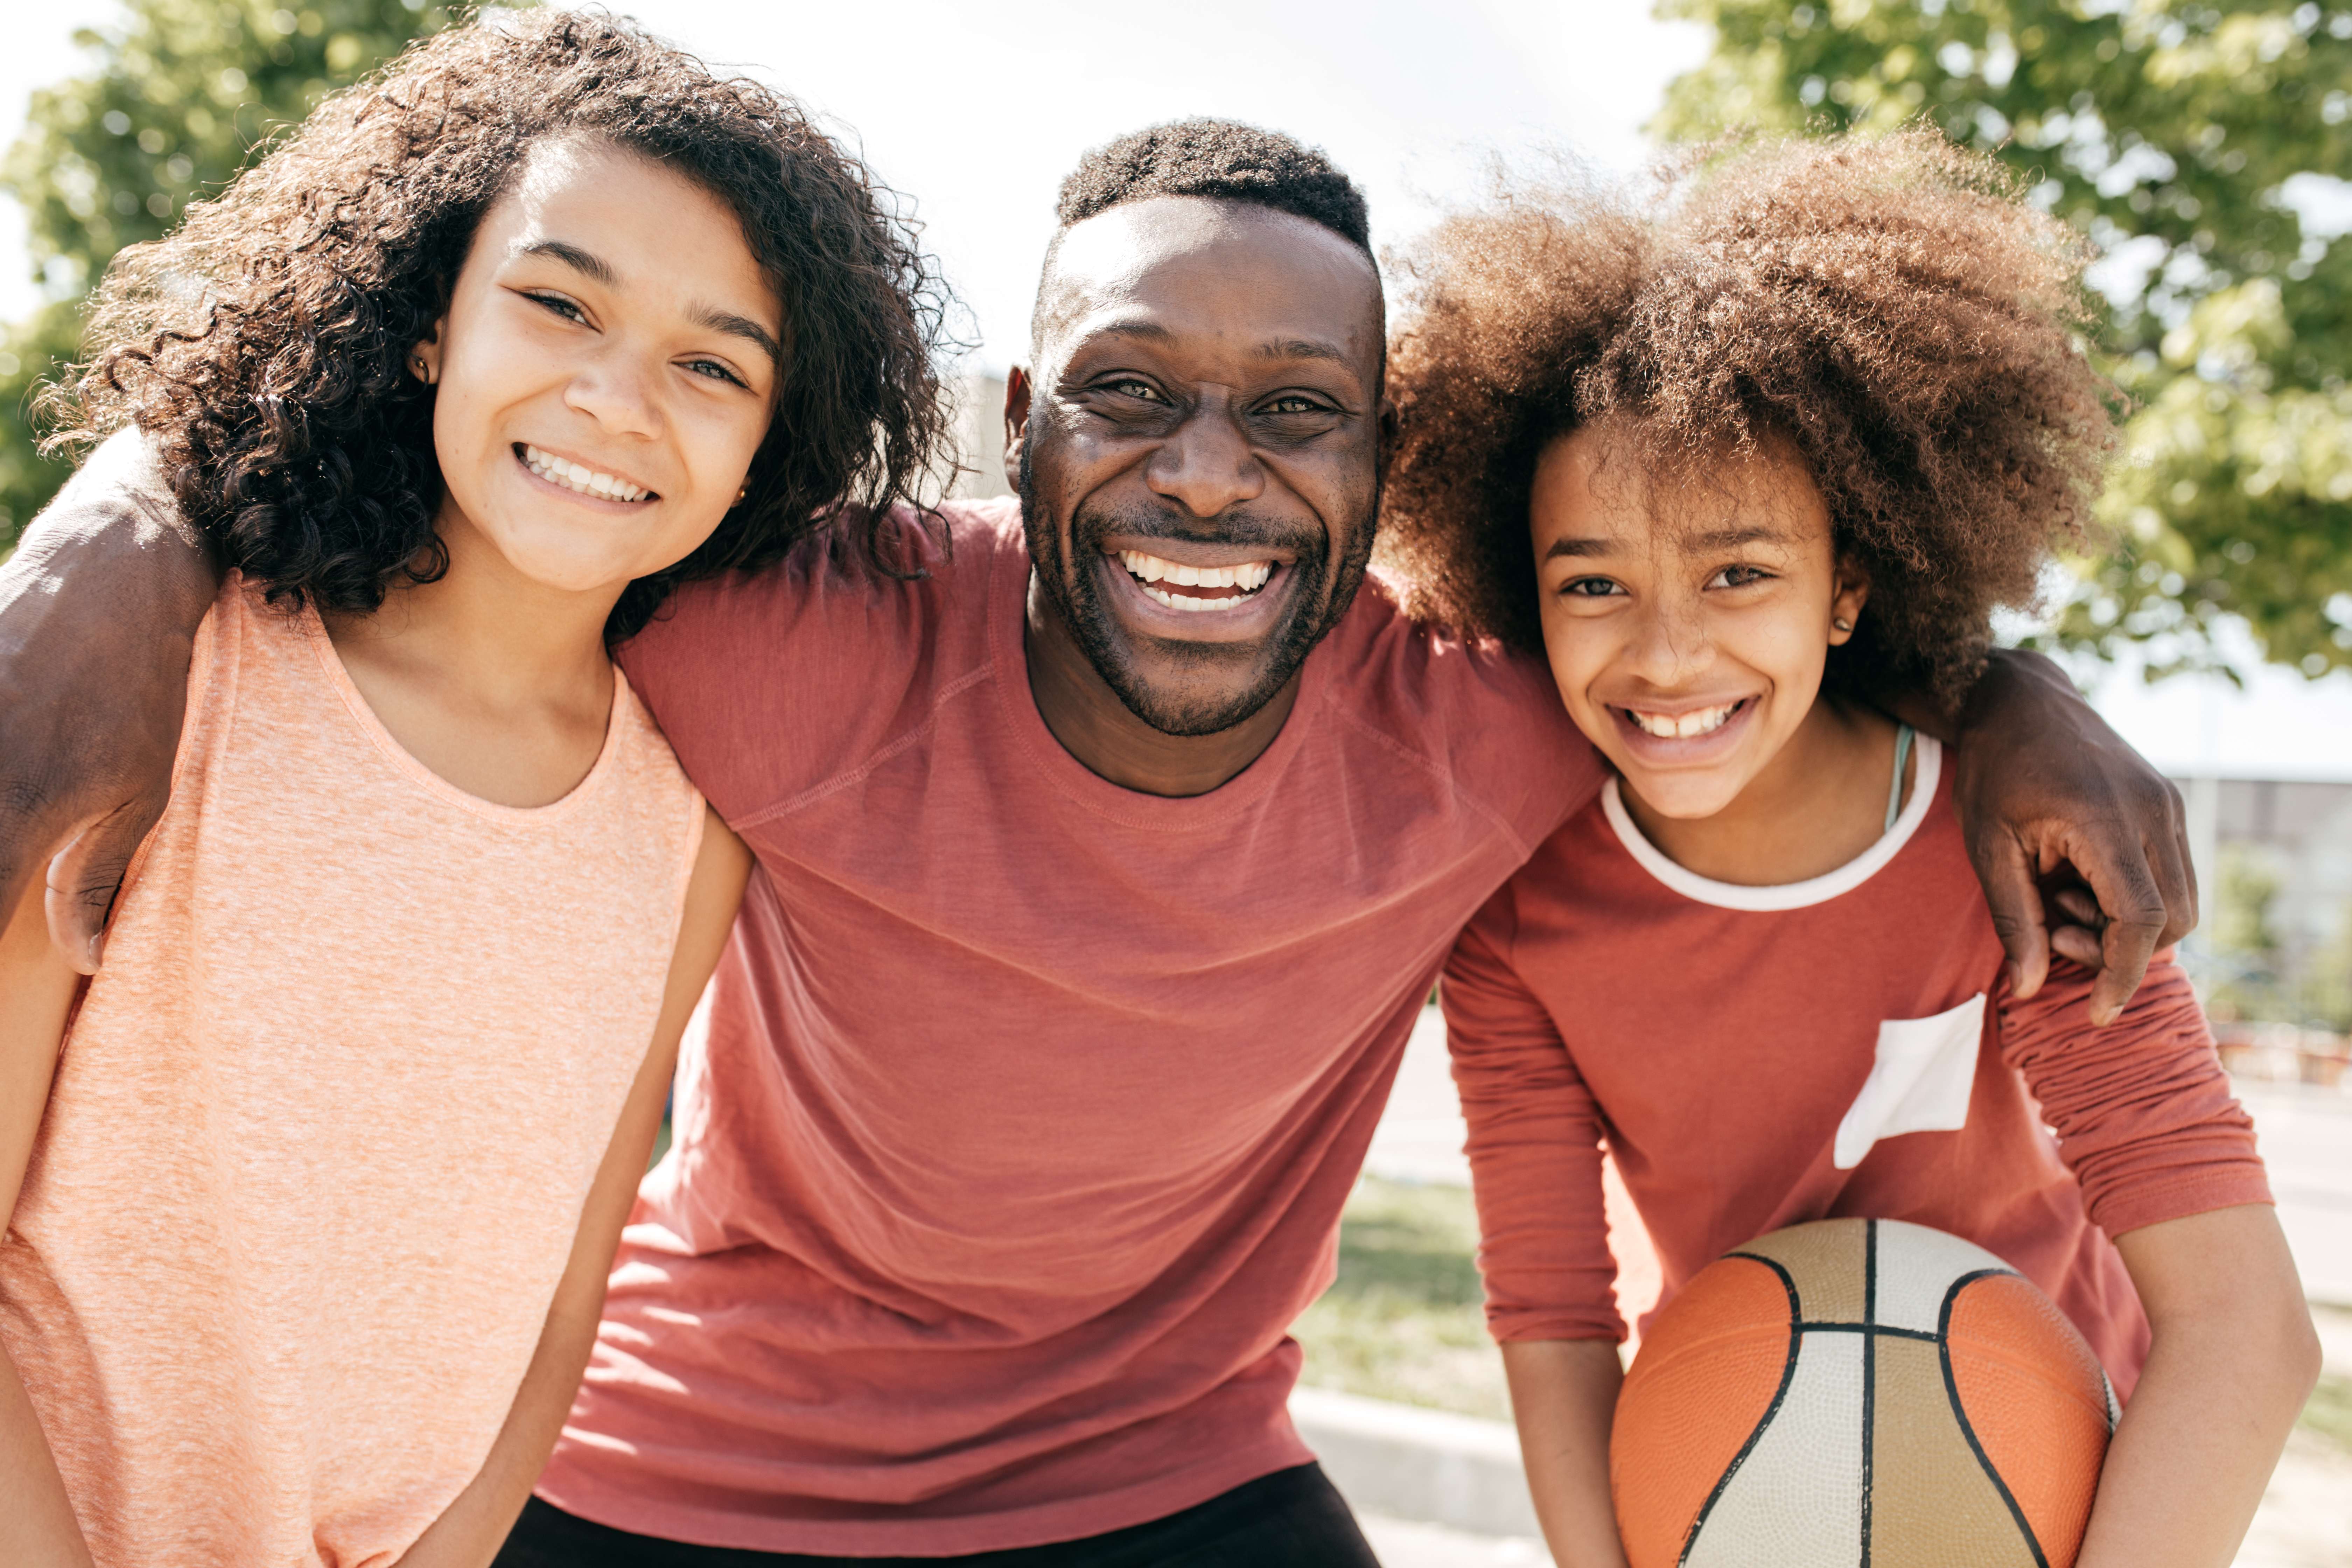 Dad and daughters posing with basketball ball